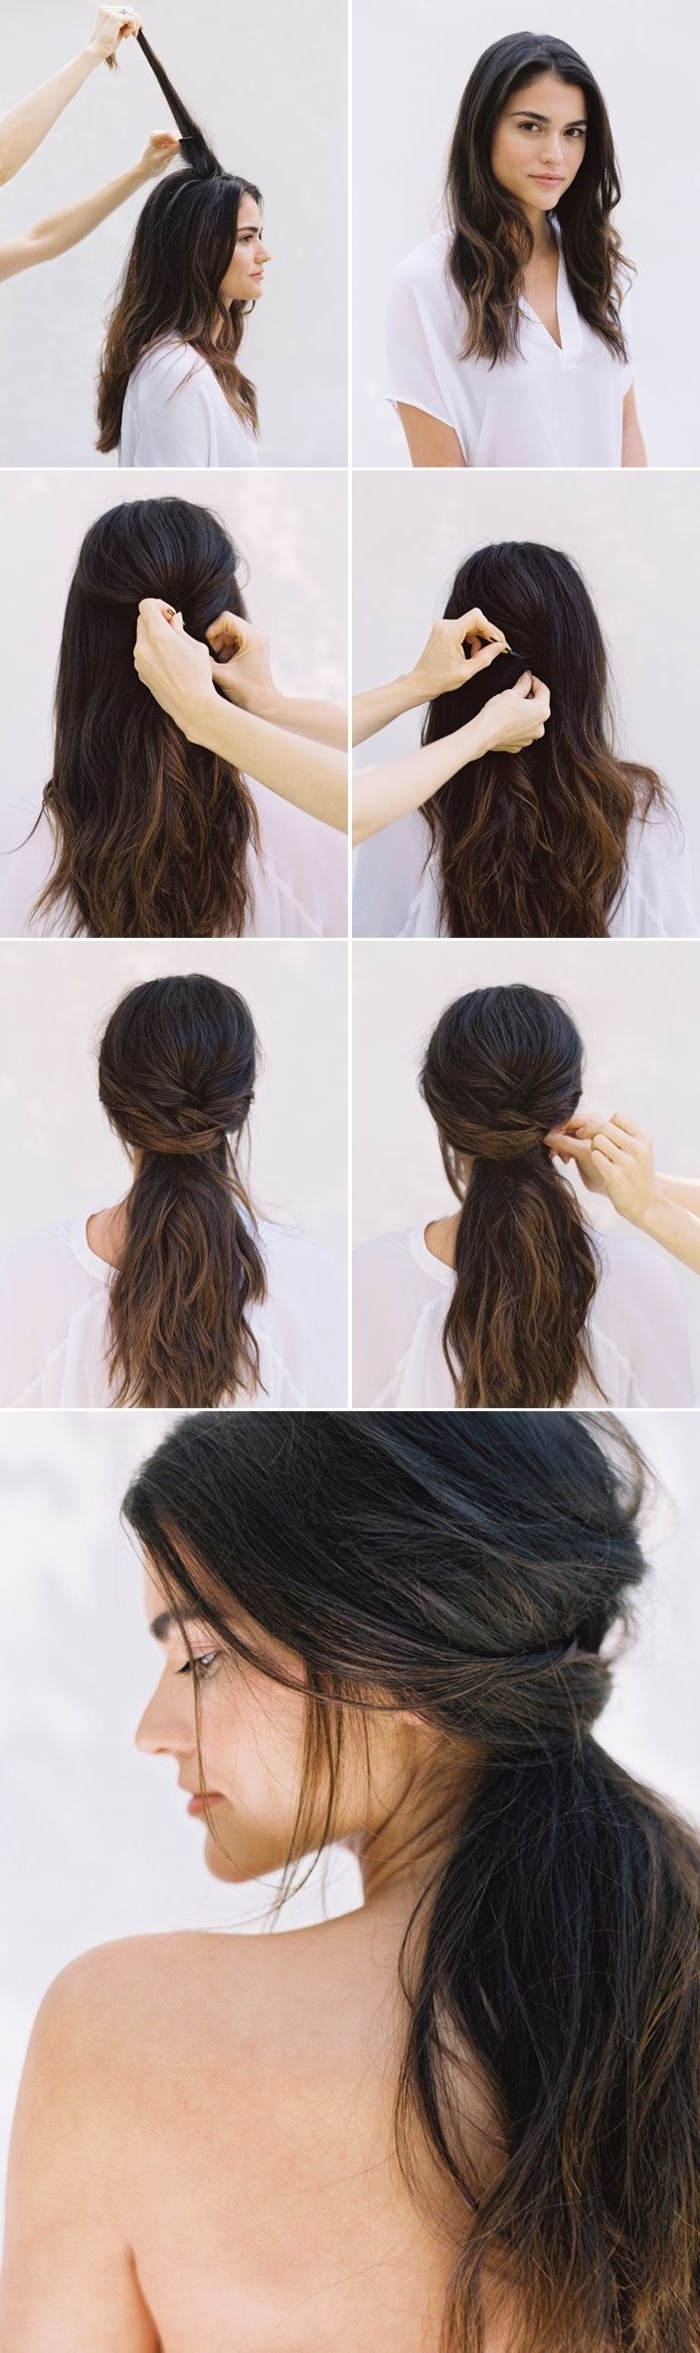 232 Best Wedding Hairstyles Images On Pinterest Regarding 2018 Outdoor Wedding Hairstyles For Bridesmaids (View 13 of 15)